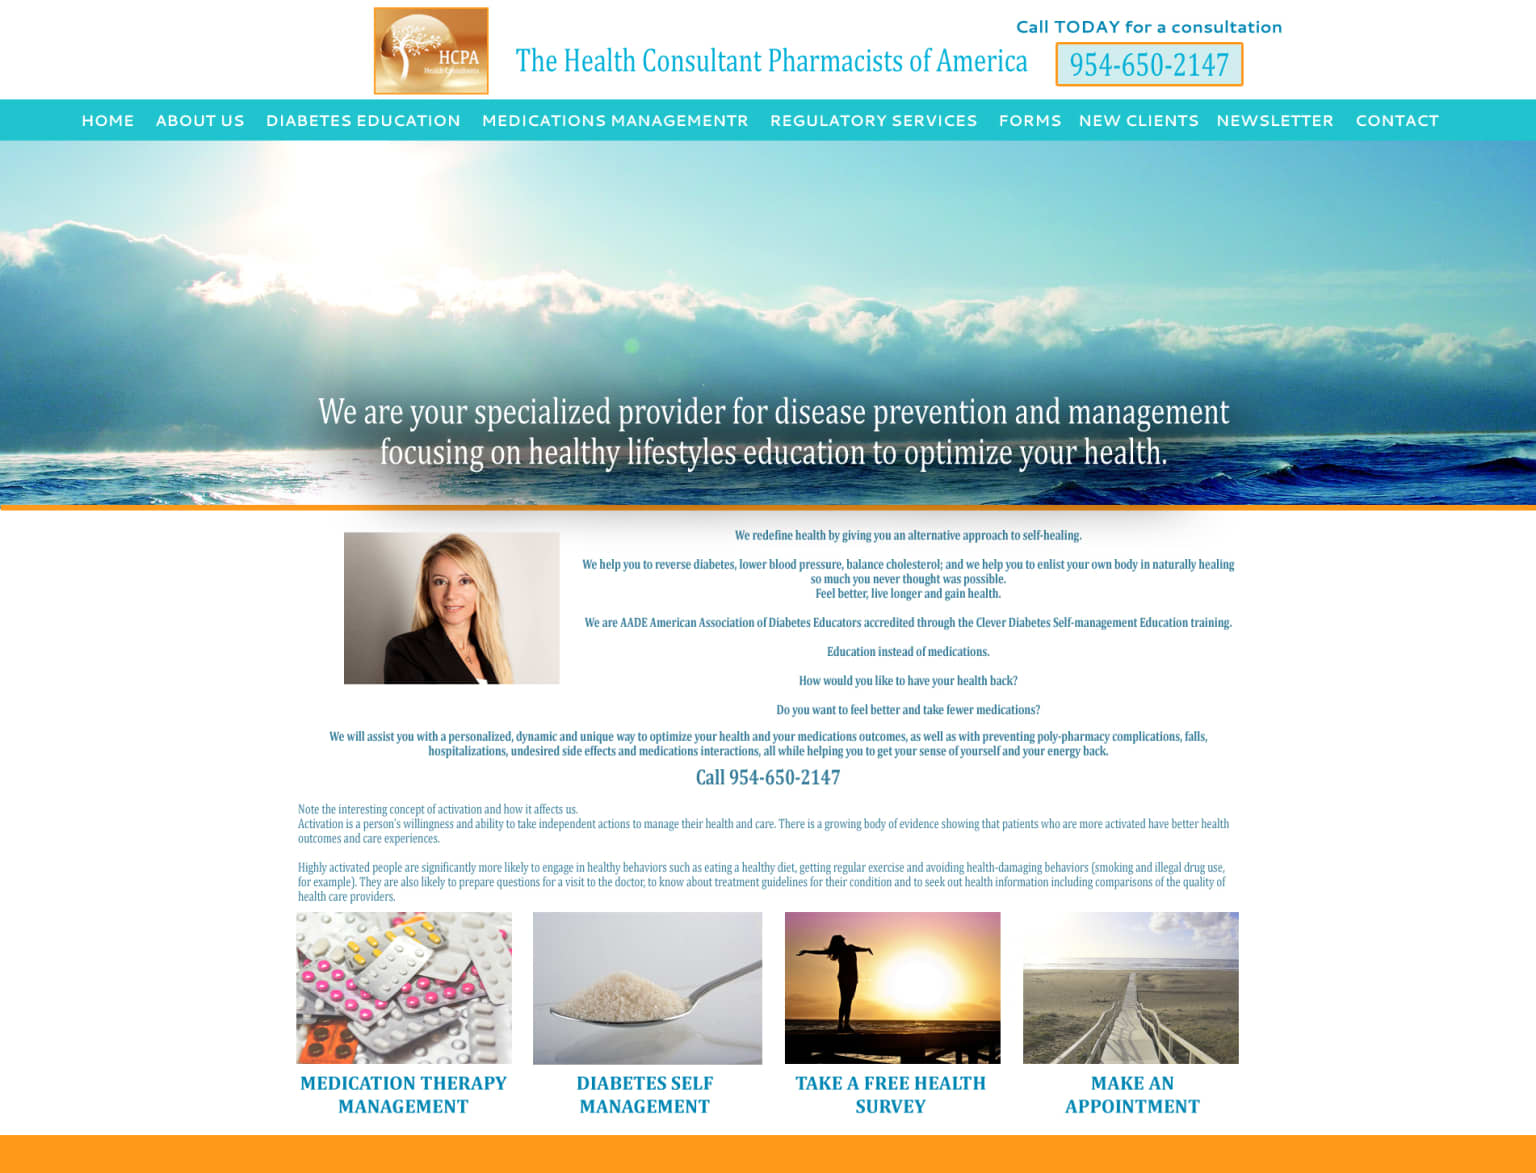 Health Consultant Pharmacists of America